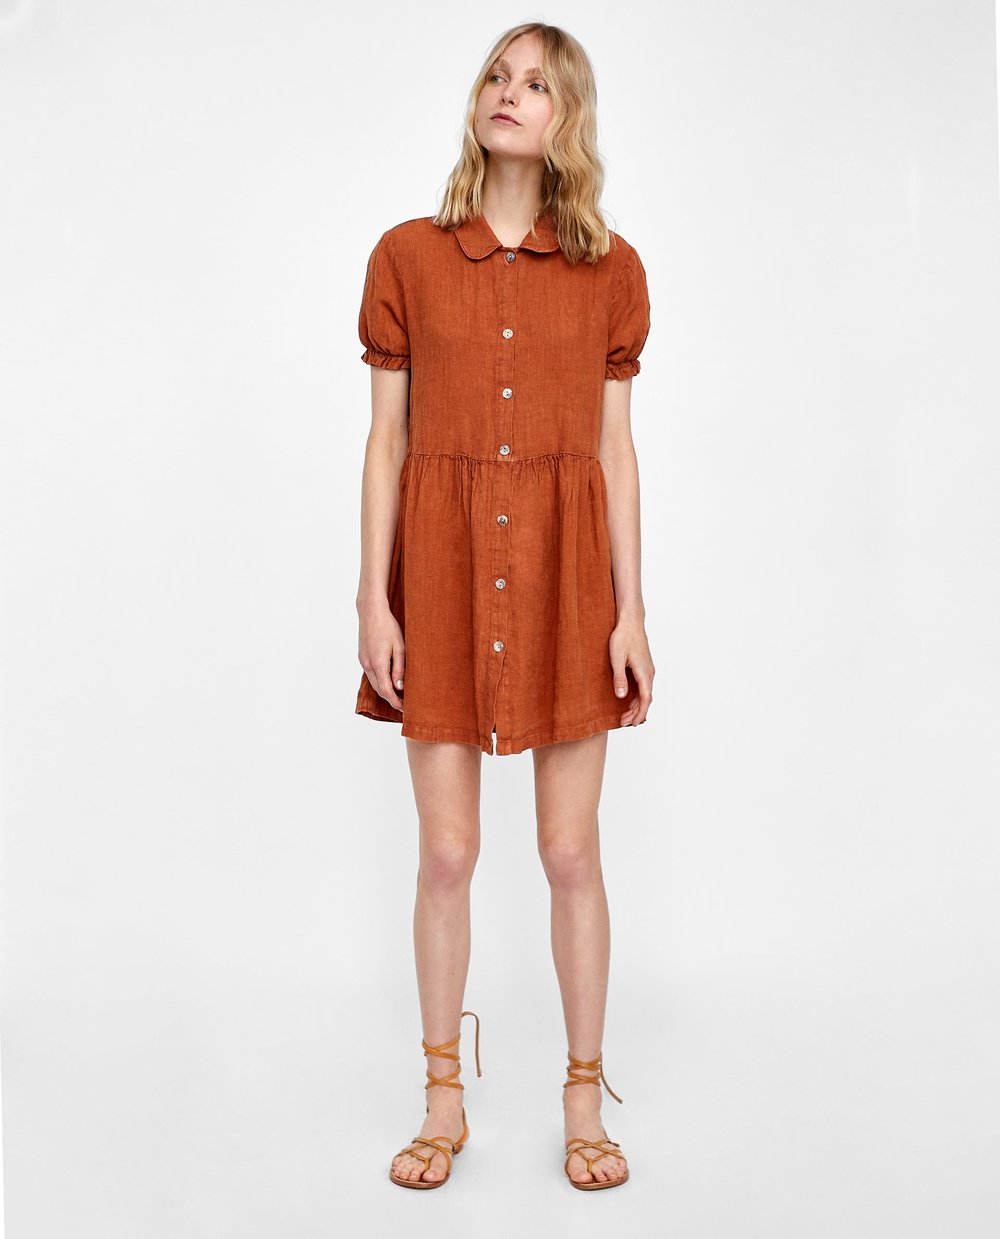 https://www.zara.com/ca/en/short-linen-dress-p05216057.html?v1=6225544&v2=968534